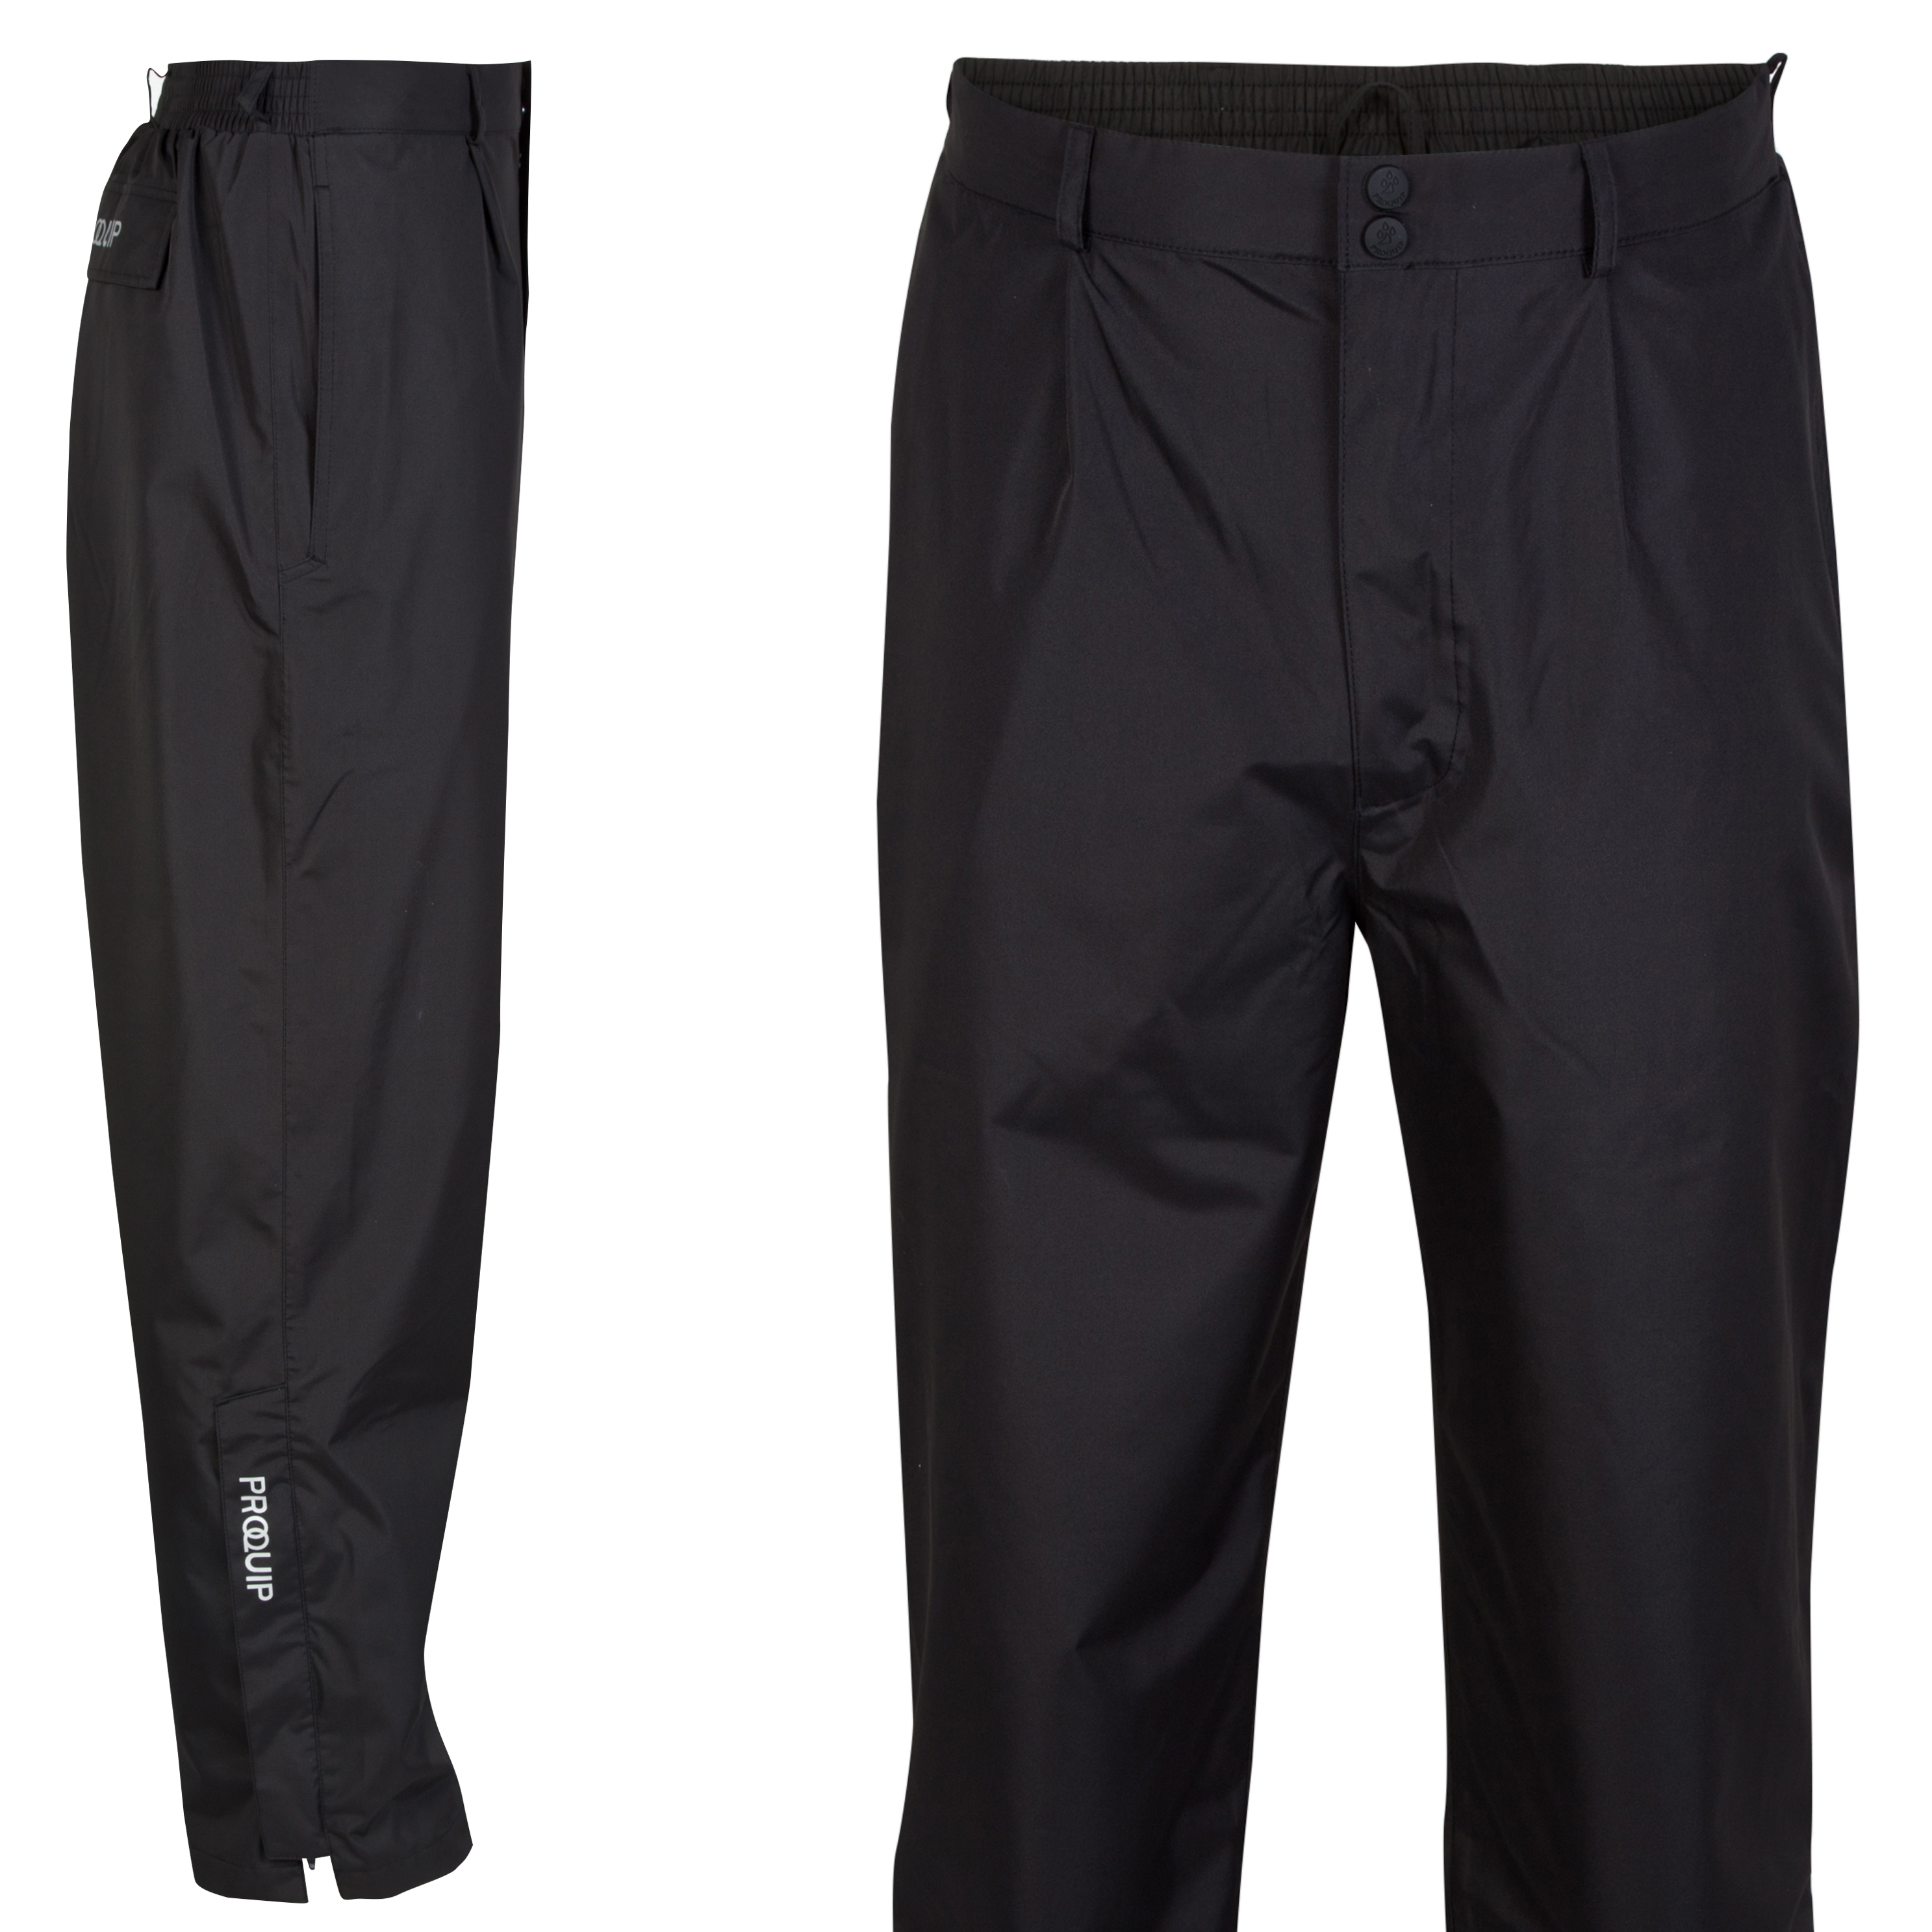 The 2014 Ryder Cup Ultralite Waterproof Trouser 31 Inch Leg Black